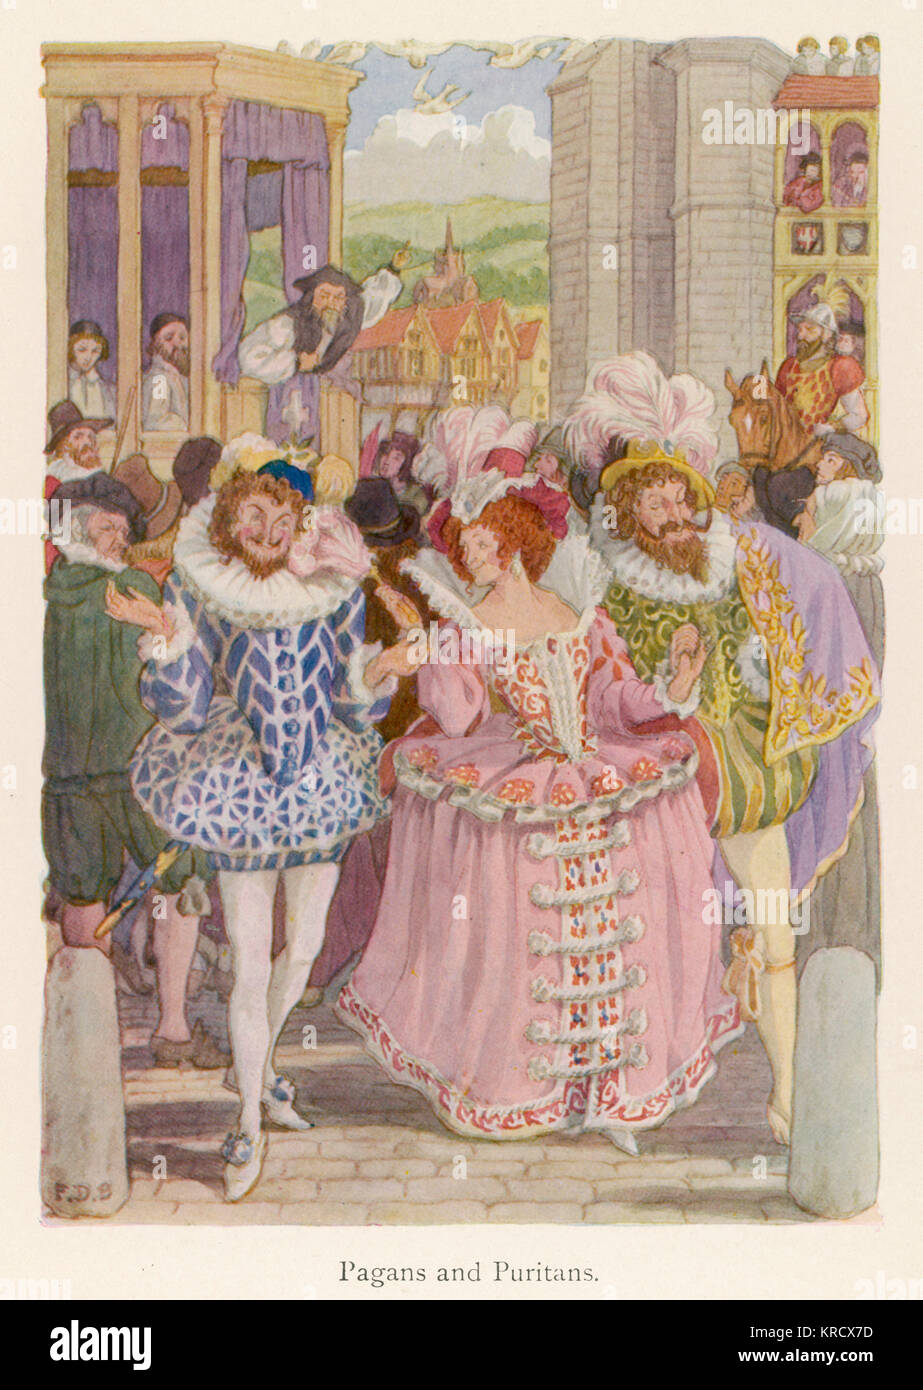 Two Elizabethan Pagan dandies,  hand in hand with a young  woman gaily dressed in pink, are berated by Puritans - Stock Image